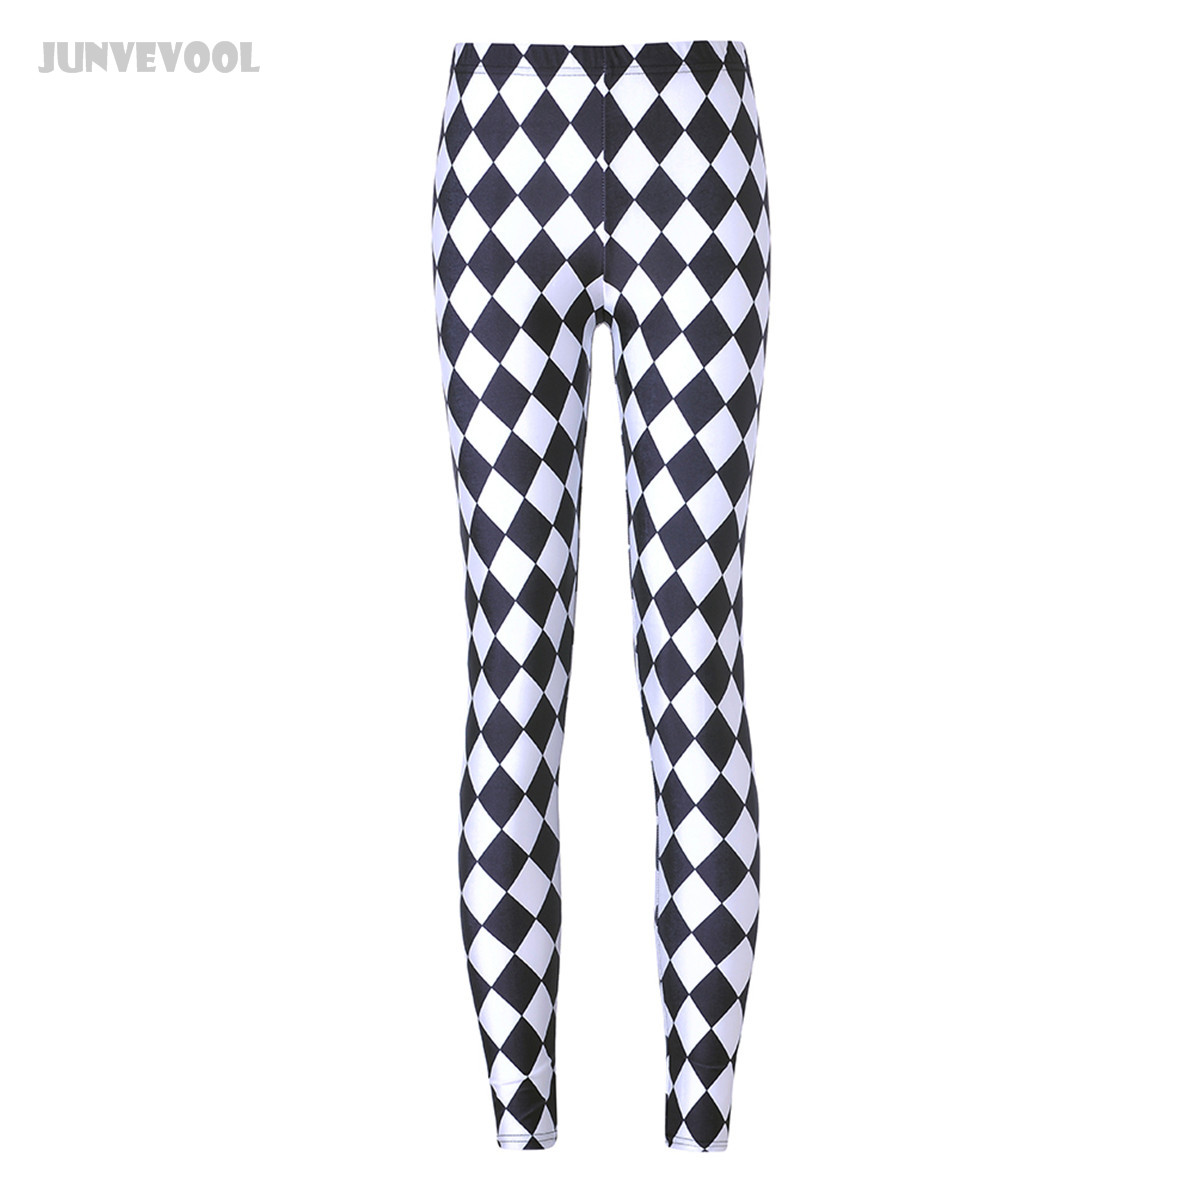 Fitness   Leggings   White Black Grid Legins Women Gothic Geometry Leggins Punk Rock Mujer Pants Pencil Sportswear Harajuku   Leggings